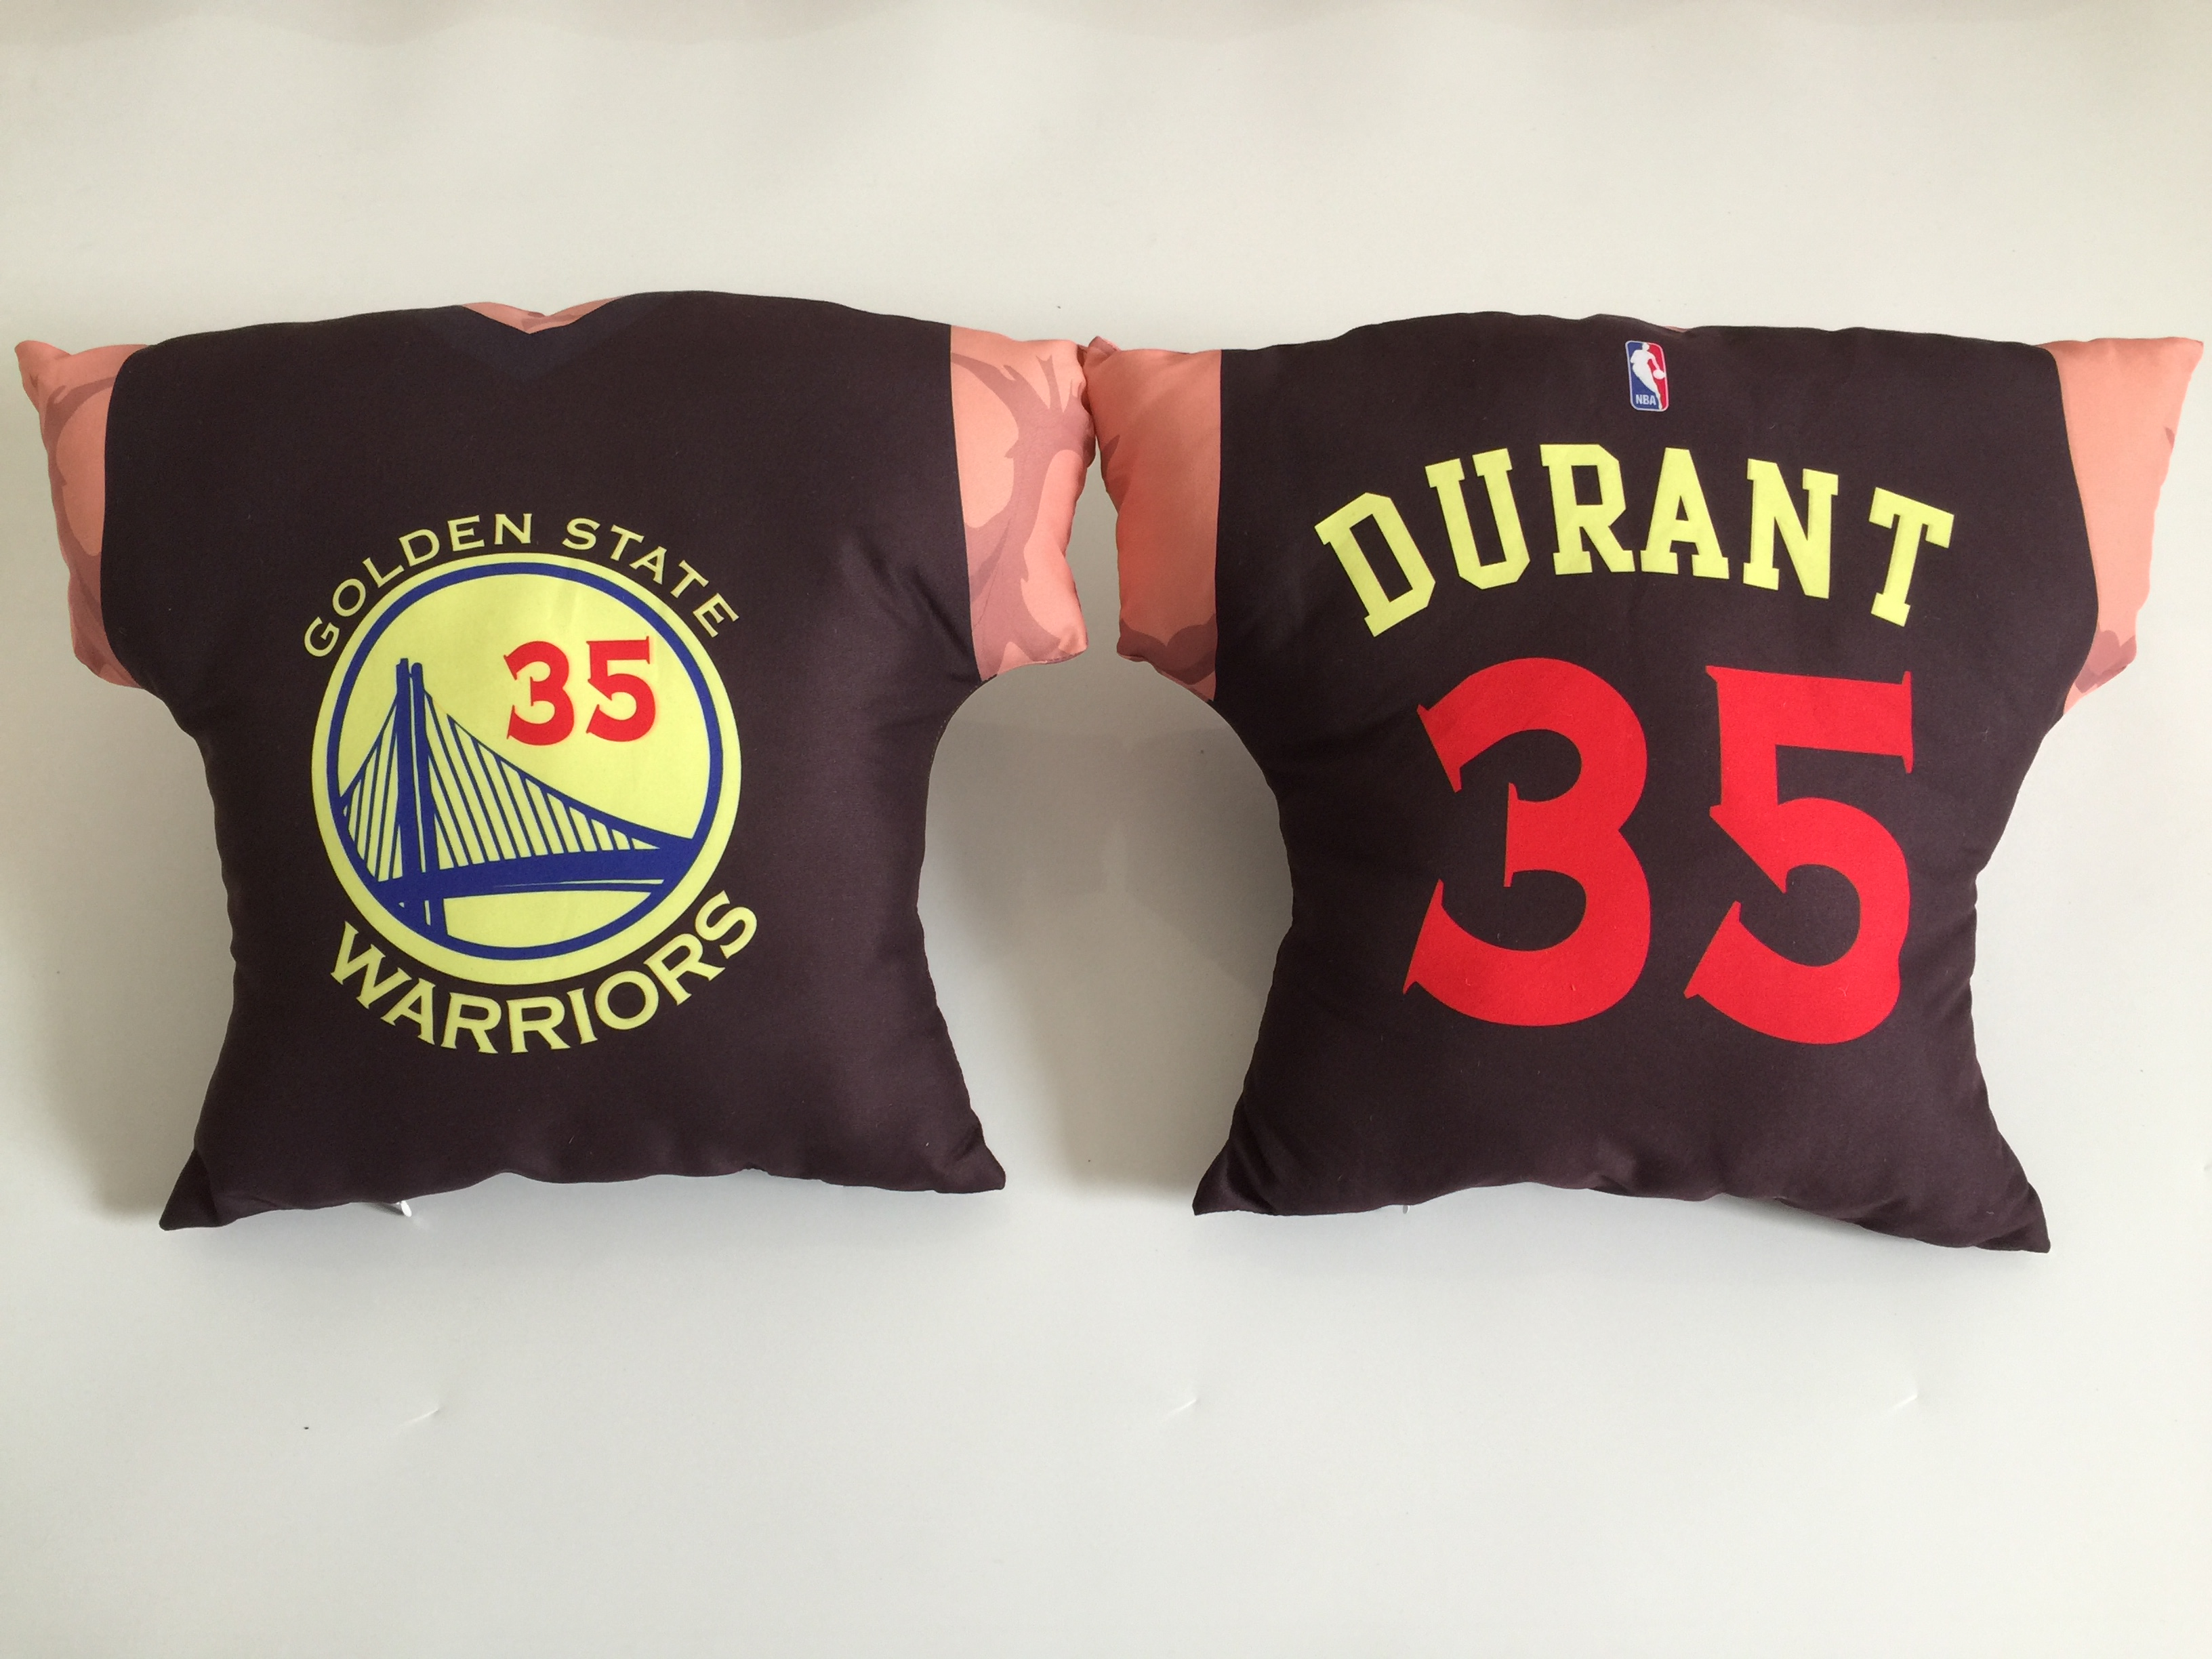 Golden State Warriors 35 Kevin Durant Black NBA Pillow